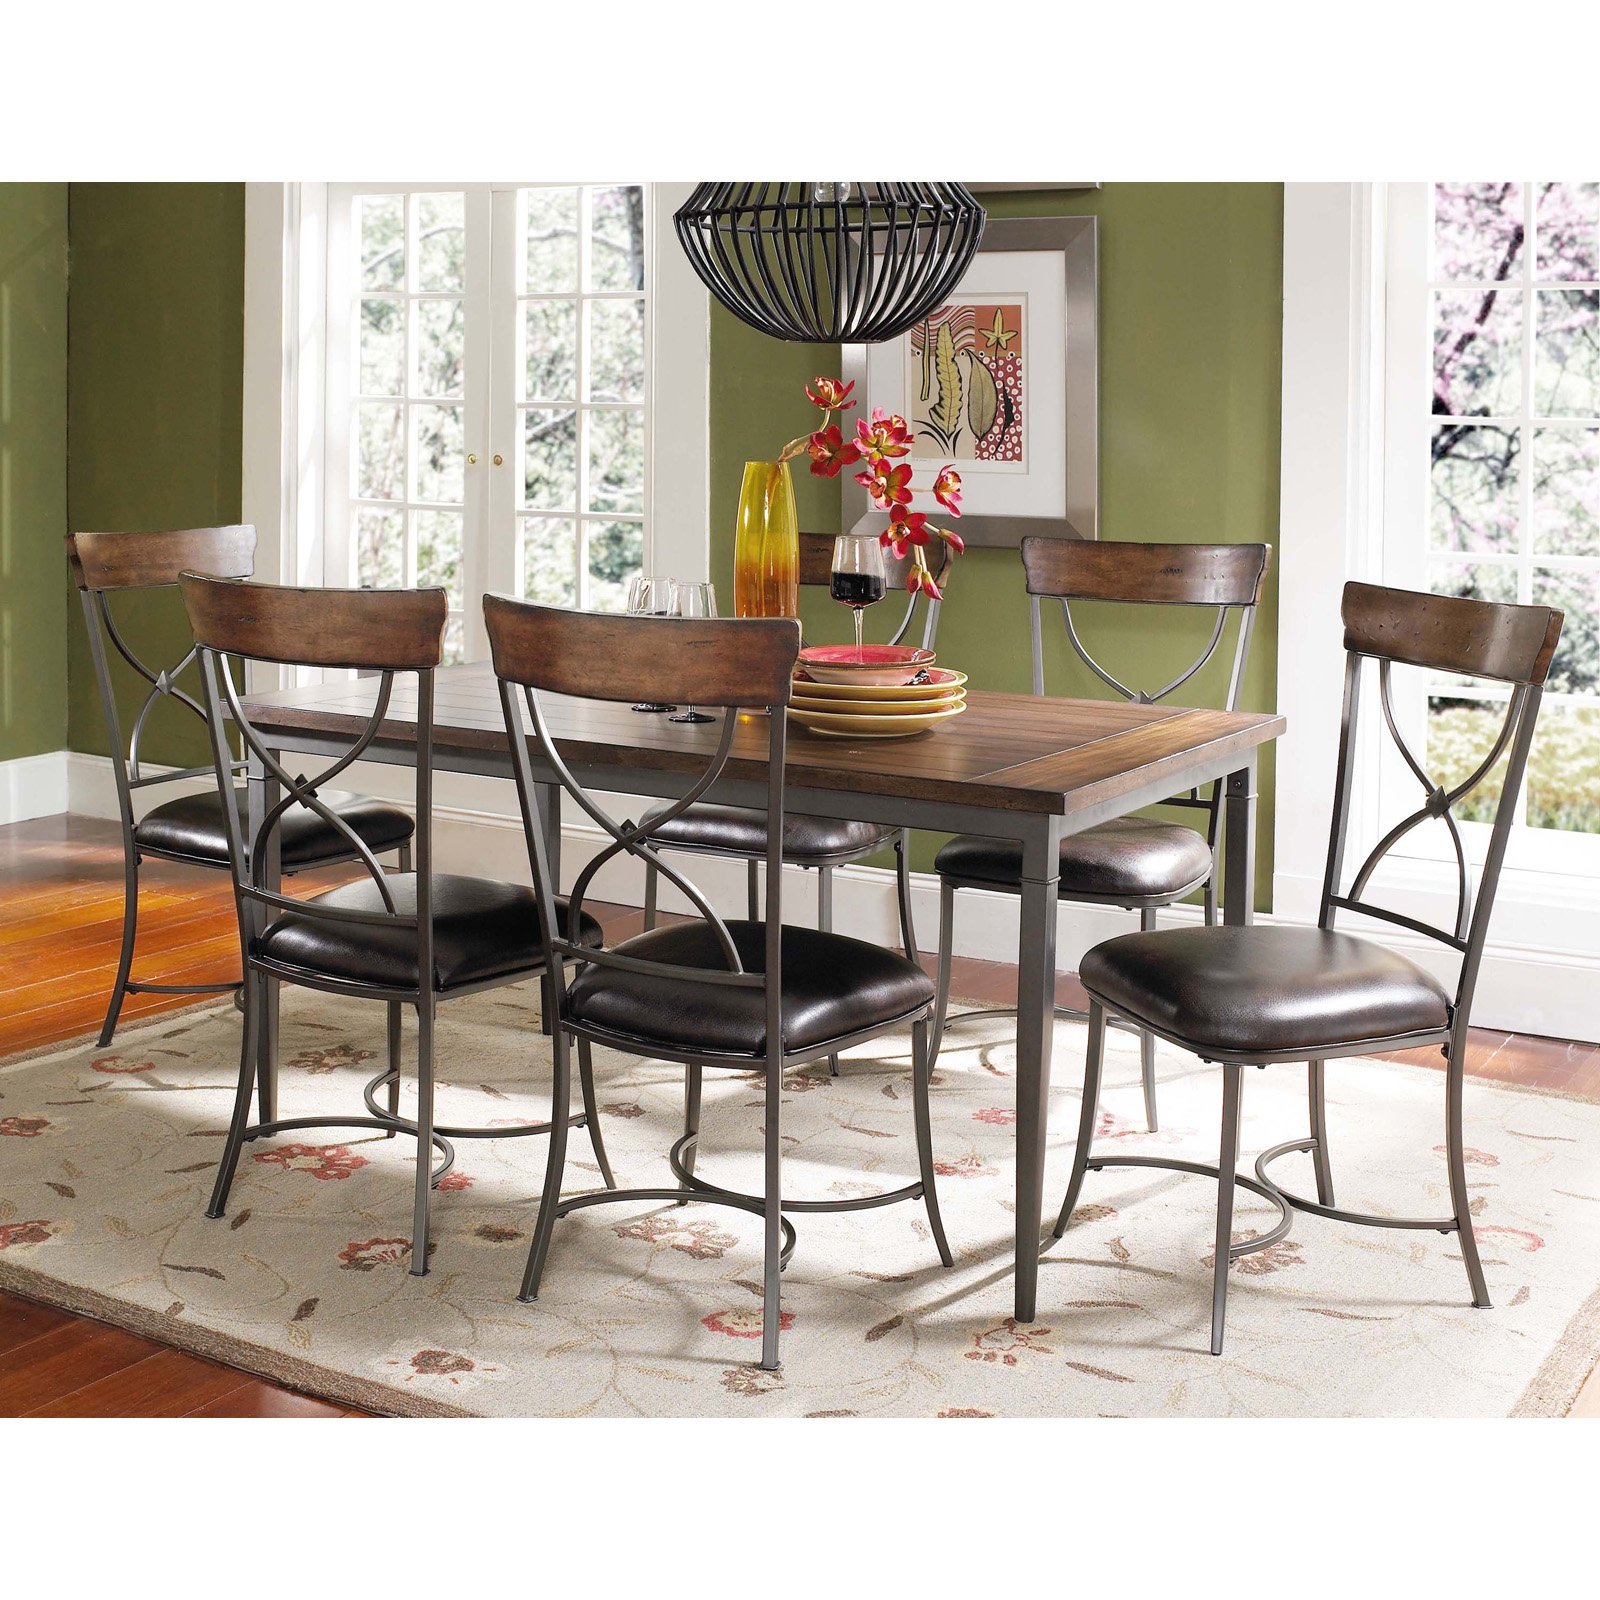 Mainstays 5 Piece Wood And Metal Dining Set   Walmart.com